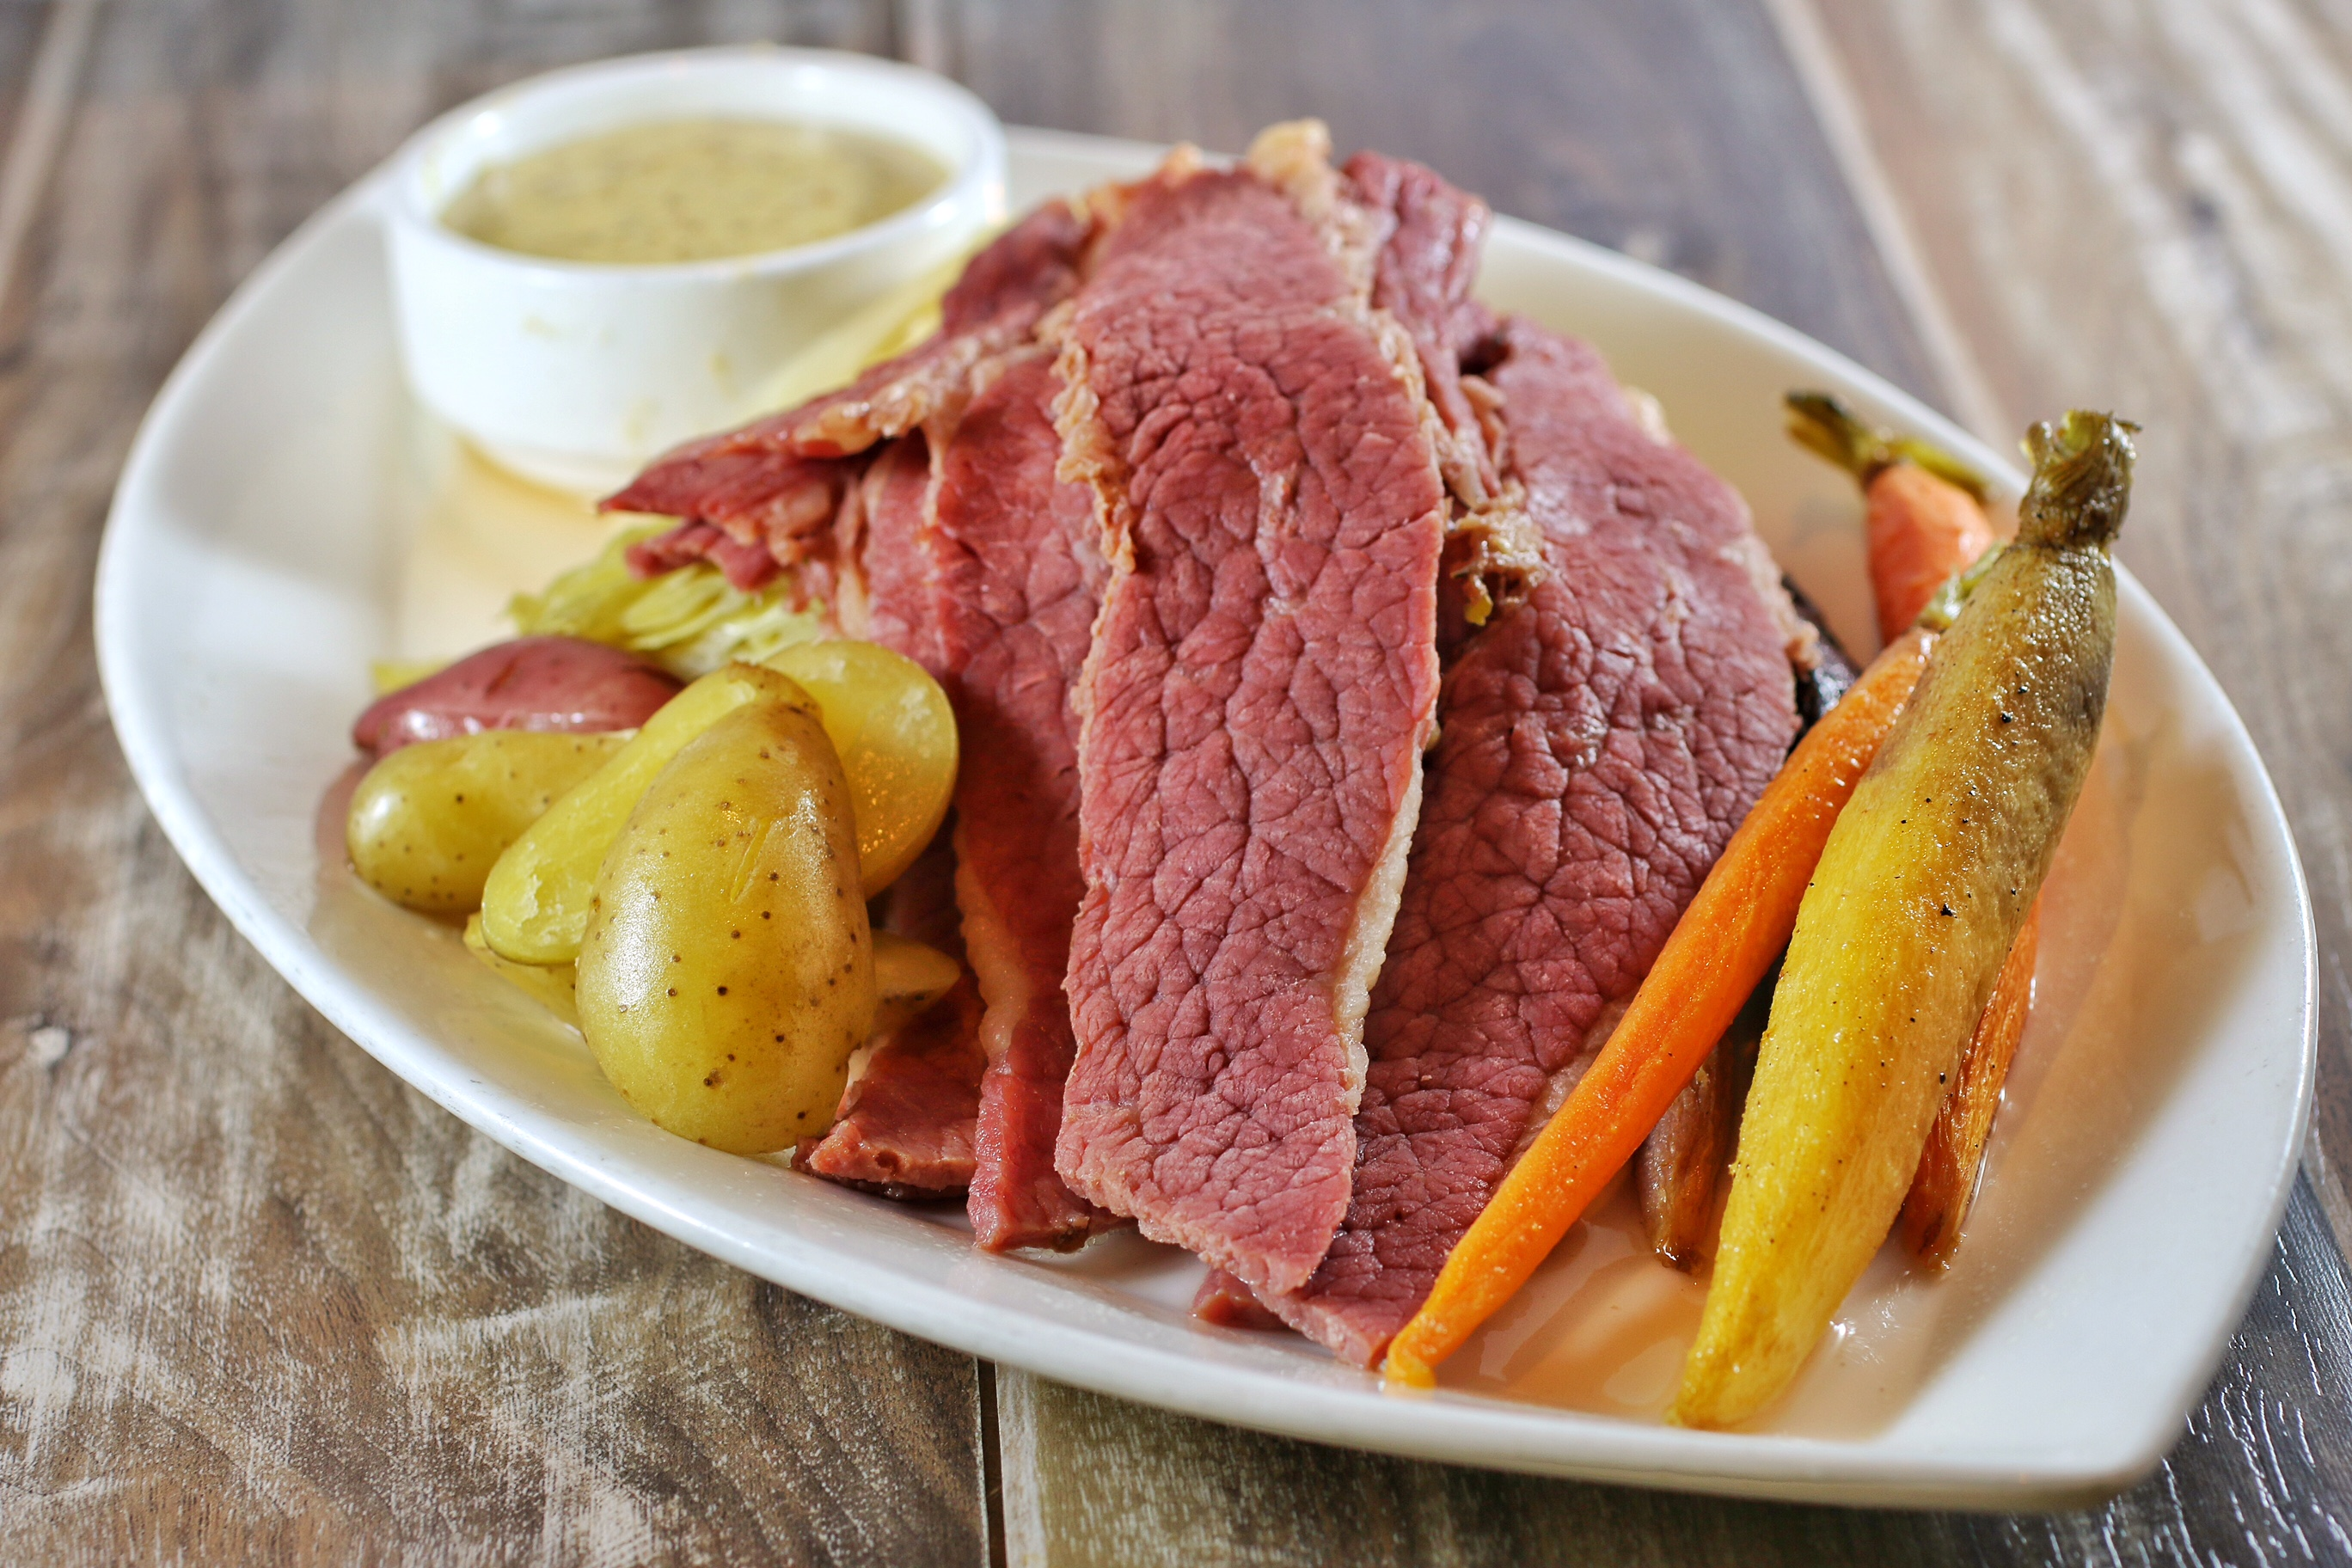 Classic corned beef & cabbage, photo courtesy of Public House.